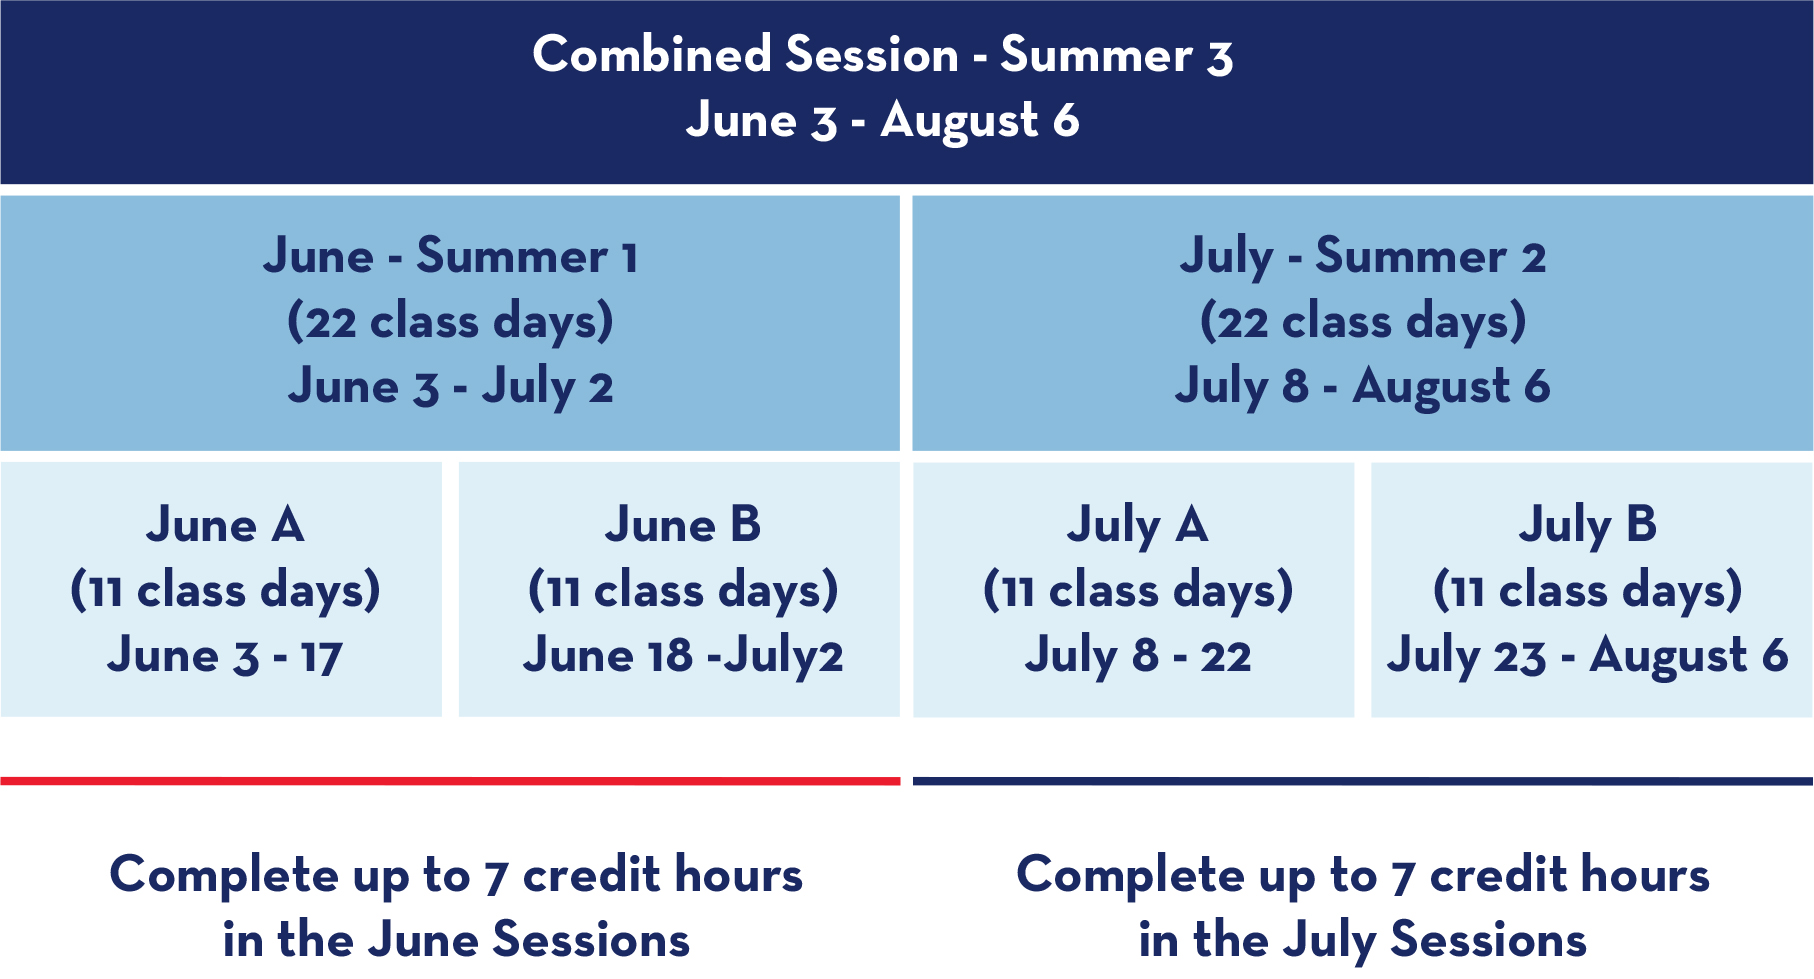 SMU offers 3 session lengths: Combined: 44 class days; June (summer 1) and July (summer 2): 22 class days; and June A&B and July A&B, each 11 class days.